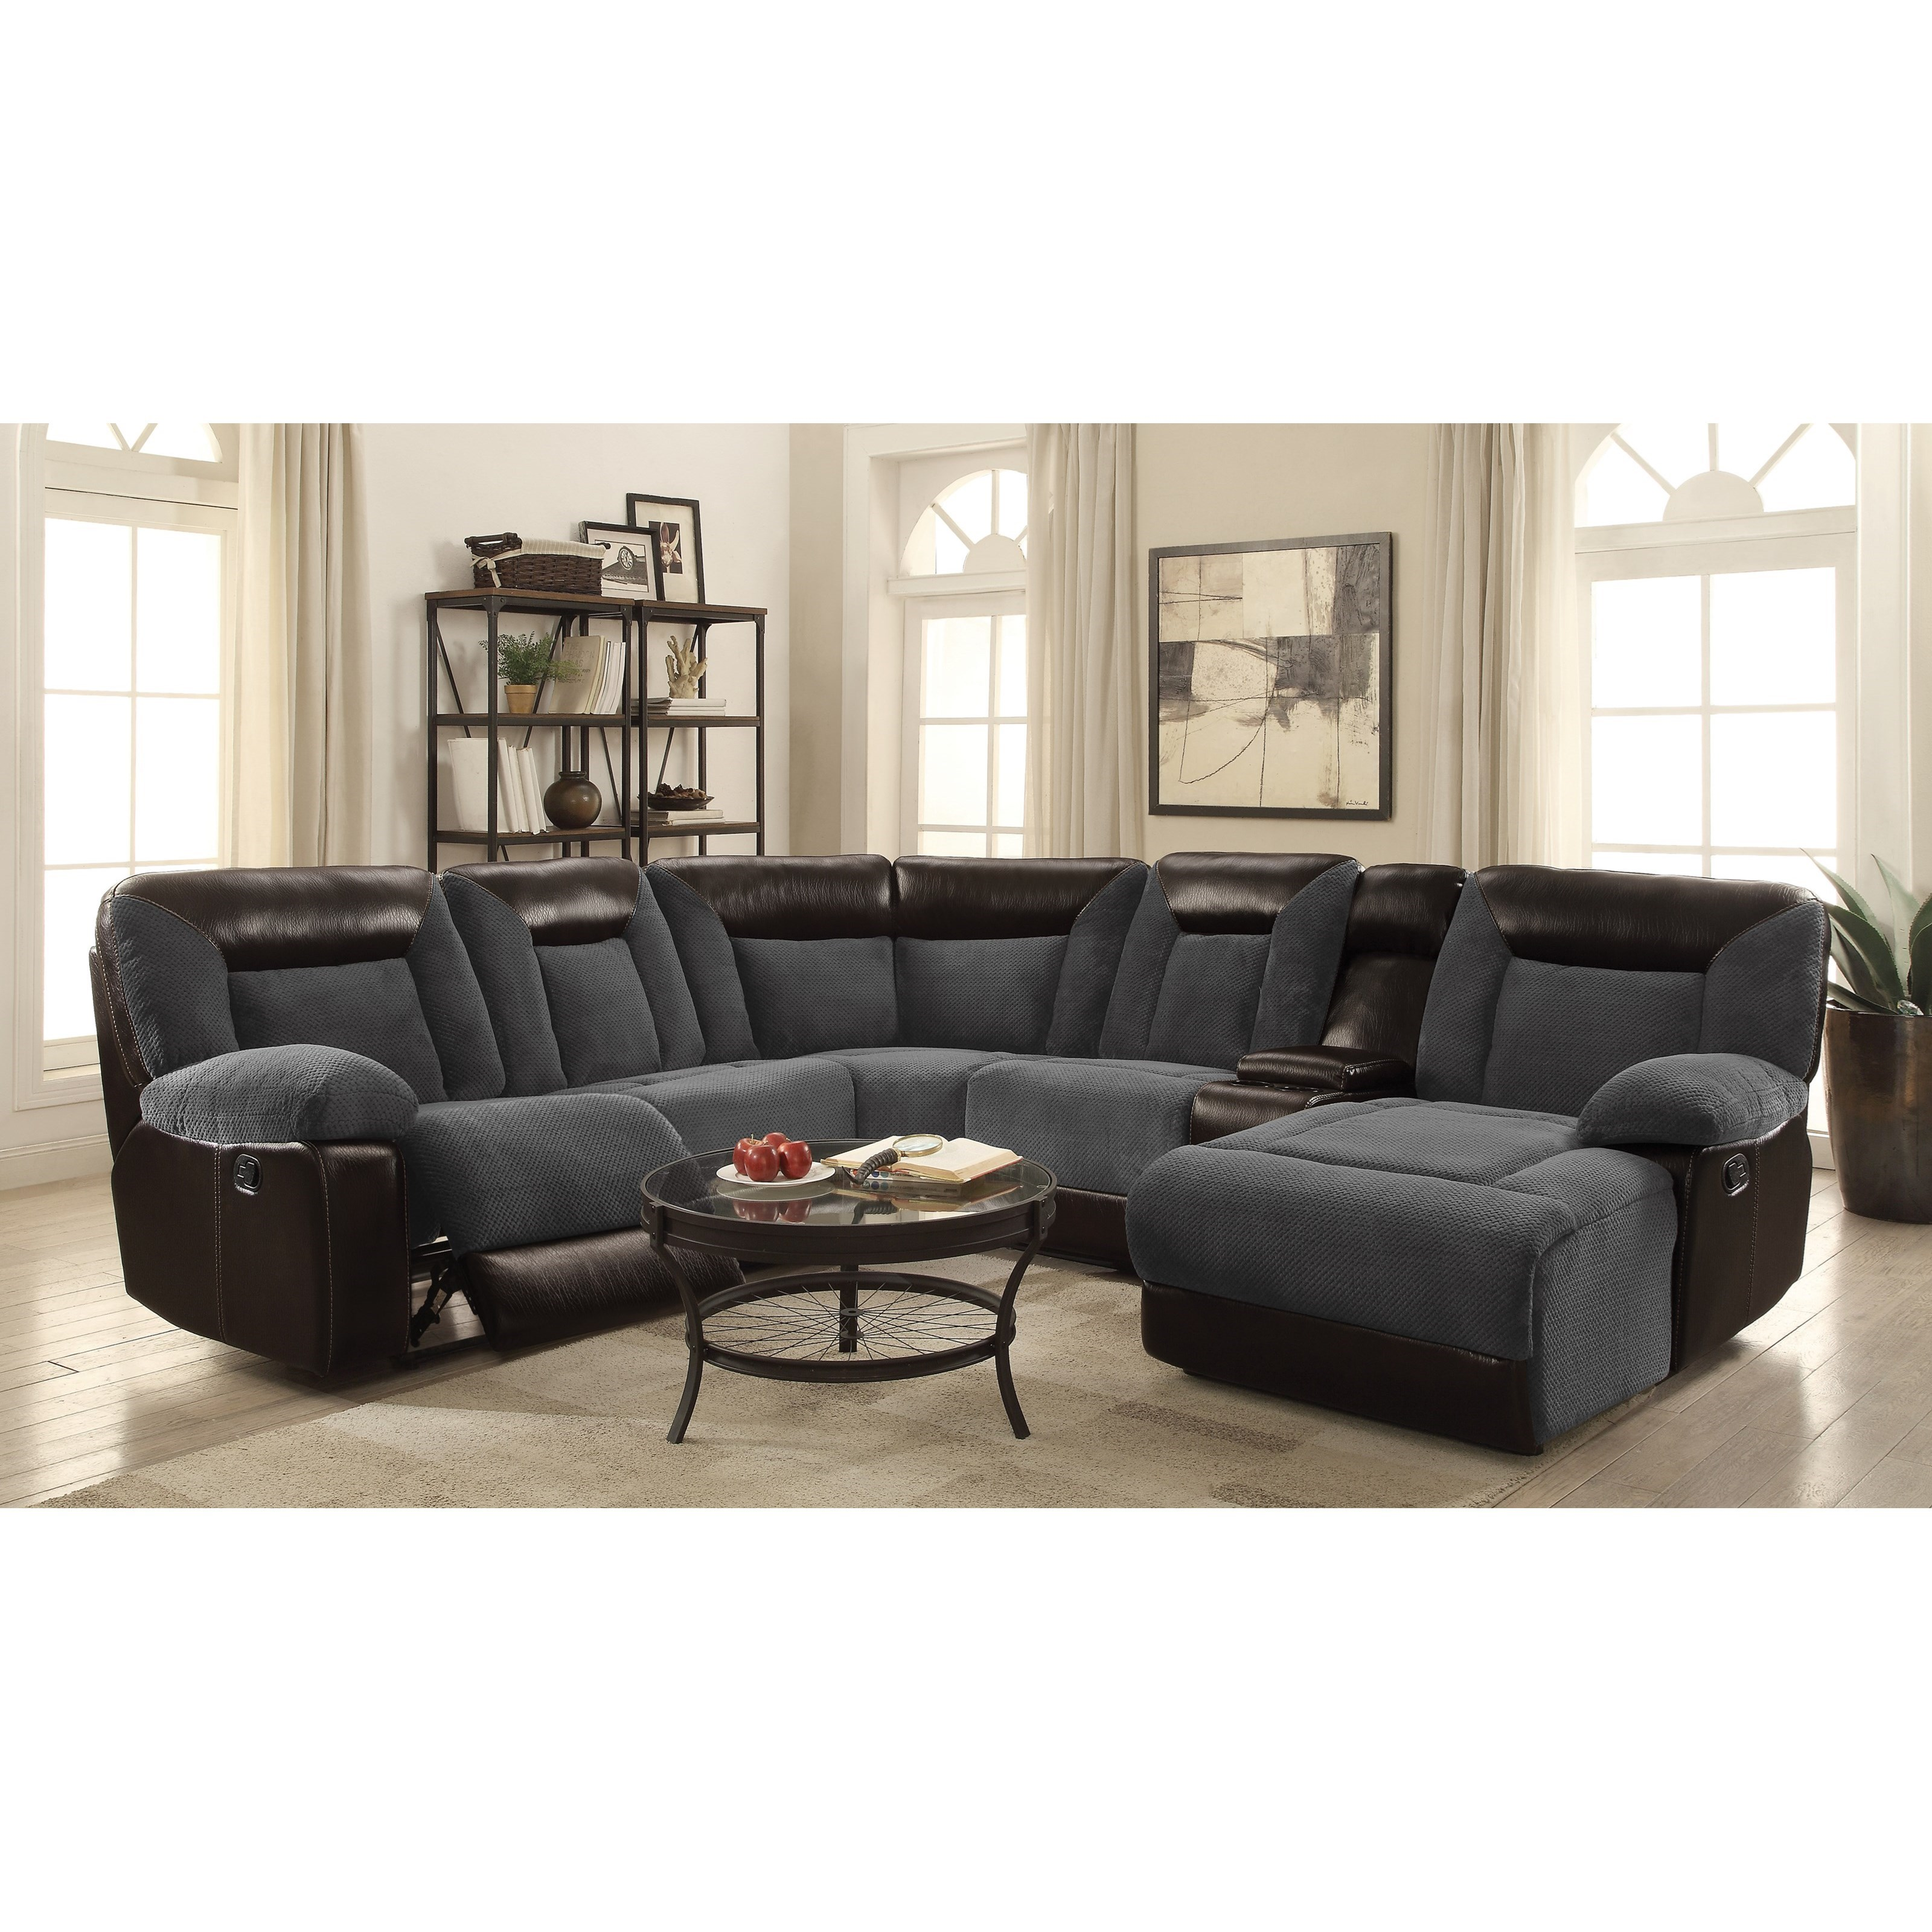 Pleasing Cybele Modular Motion Sectional Sofa By Coaster Machost Co Dining Chair Design Ideas Machostcouk